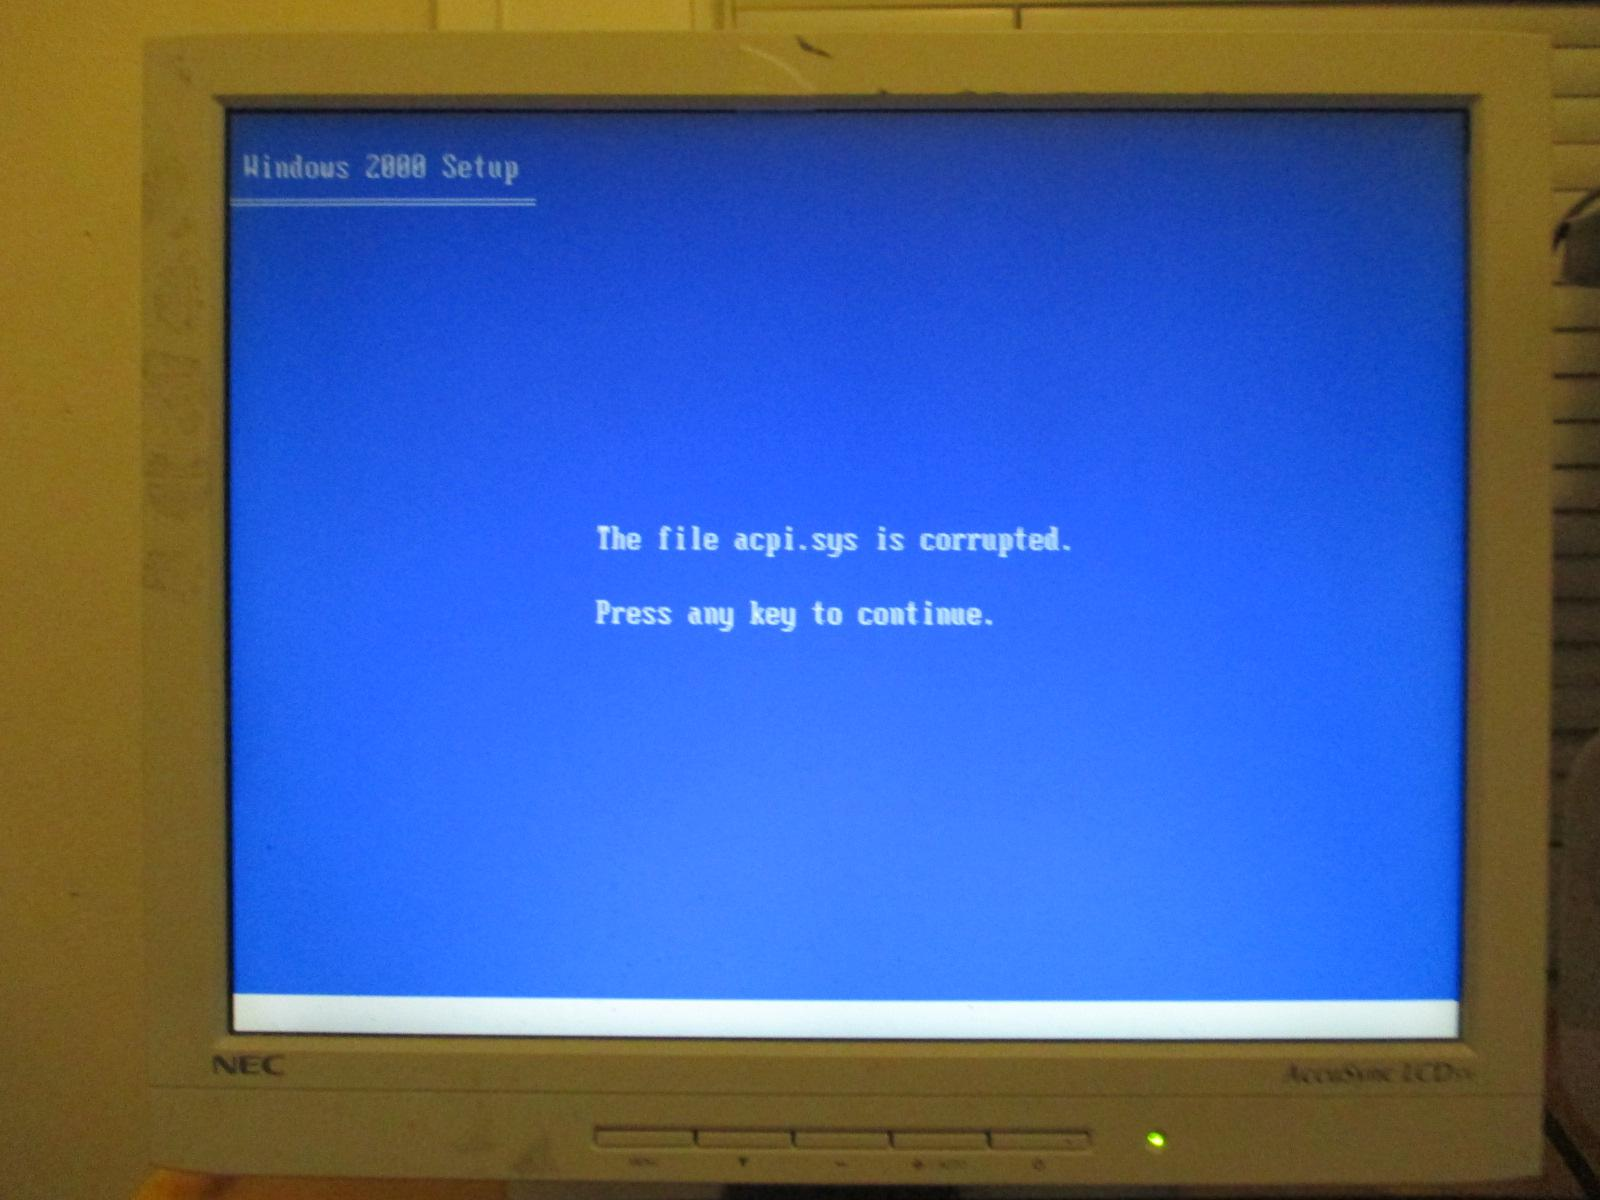 Having errors with installing windows 2000 updates shut off automatic windows updates xp